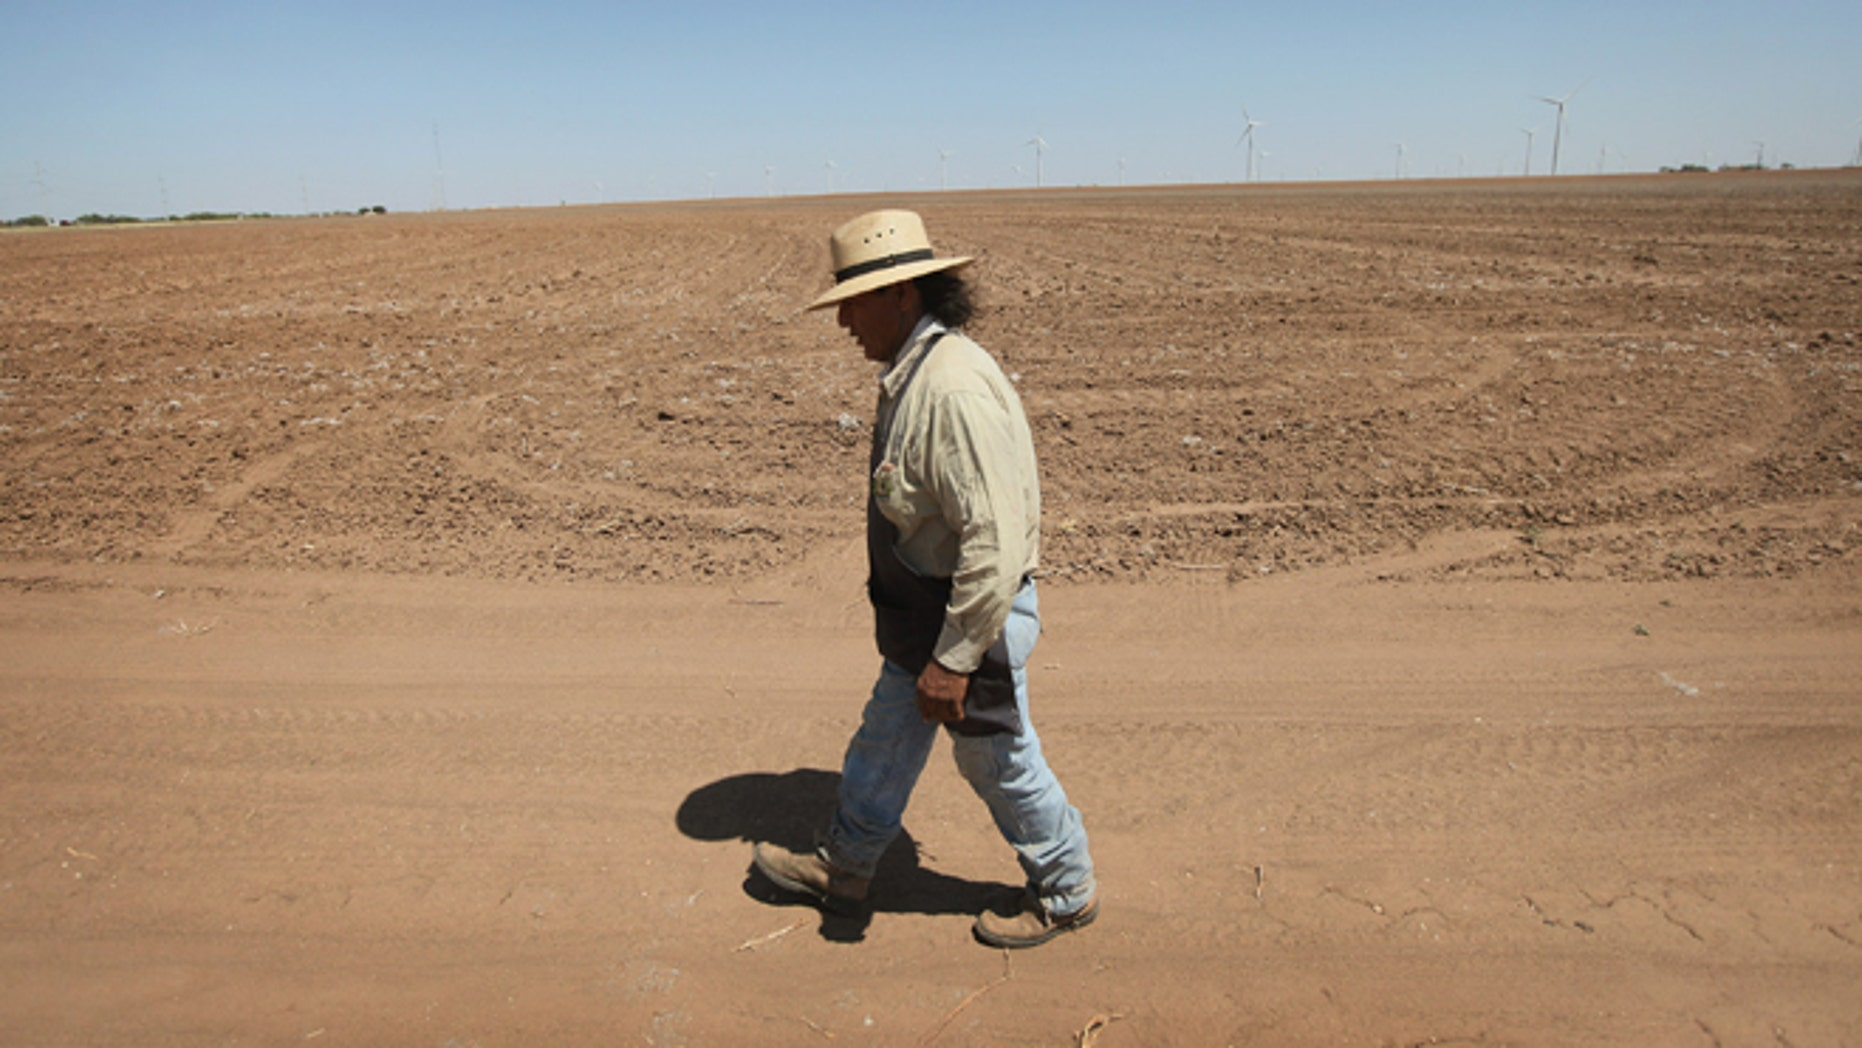 """HERMLEIGH, TX - JULY 27: Juan Rico walks by a barren cotton field July 27, 2011 near Hermleigh, Texas. A severe drought has caused the majority of dry-land (non-irrigated fields) cotton crops to fail in the region. The past nine months have been the driest in Texas since record keeping began in 1895, with 75% of the state classified as """"exceptional drought"""", the highest classification.  (Photo by Scott Olson/Getty Images)"""